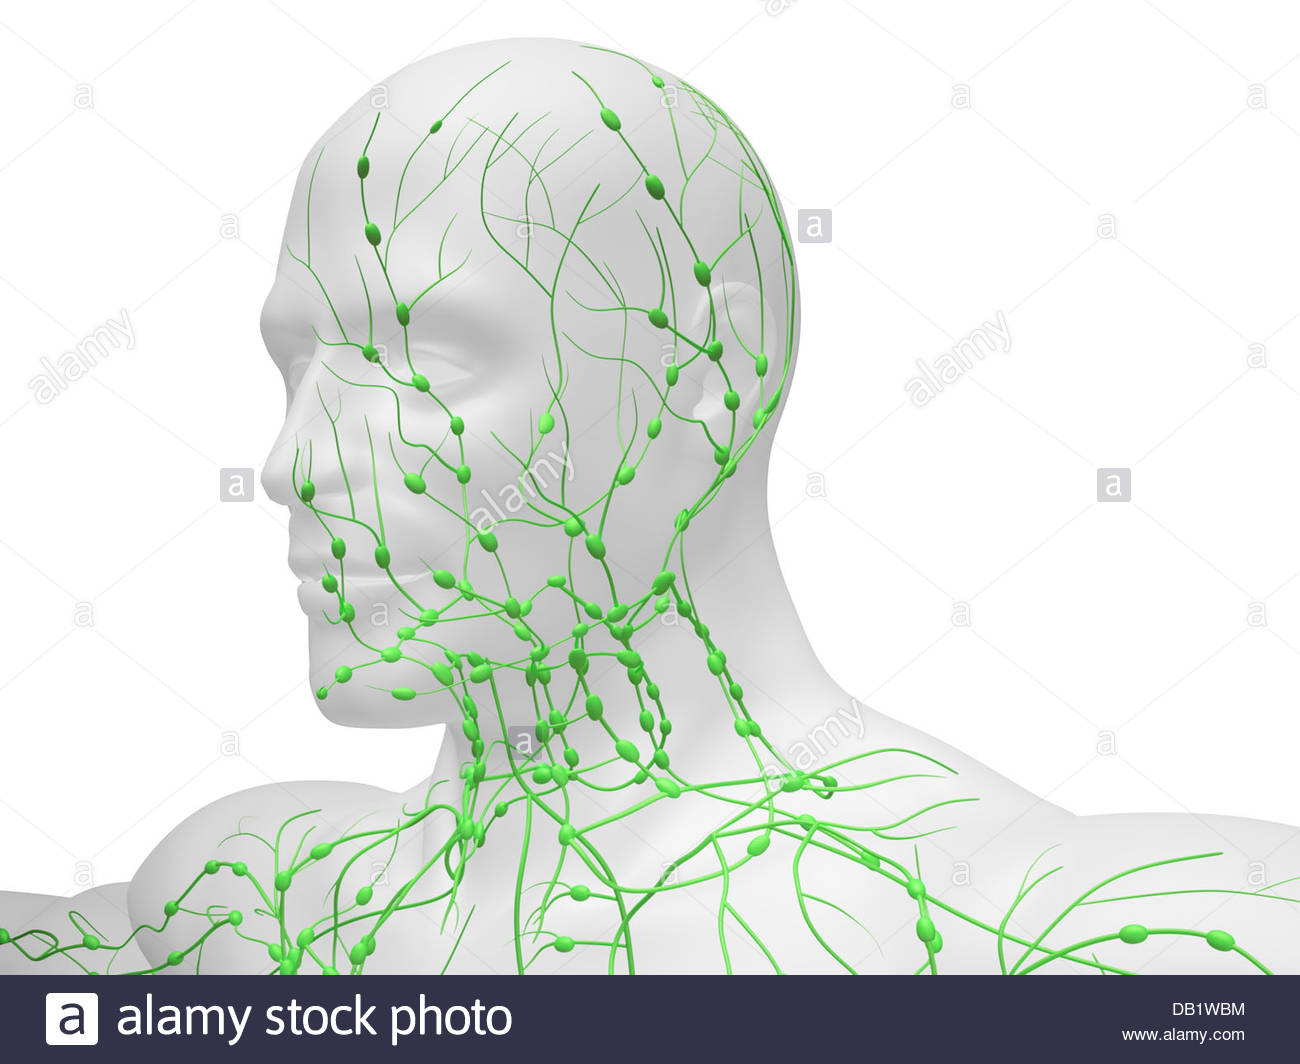 Lymphatic System Of Neck And Head Stock Photos Lymphatic System Of